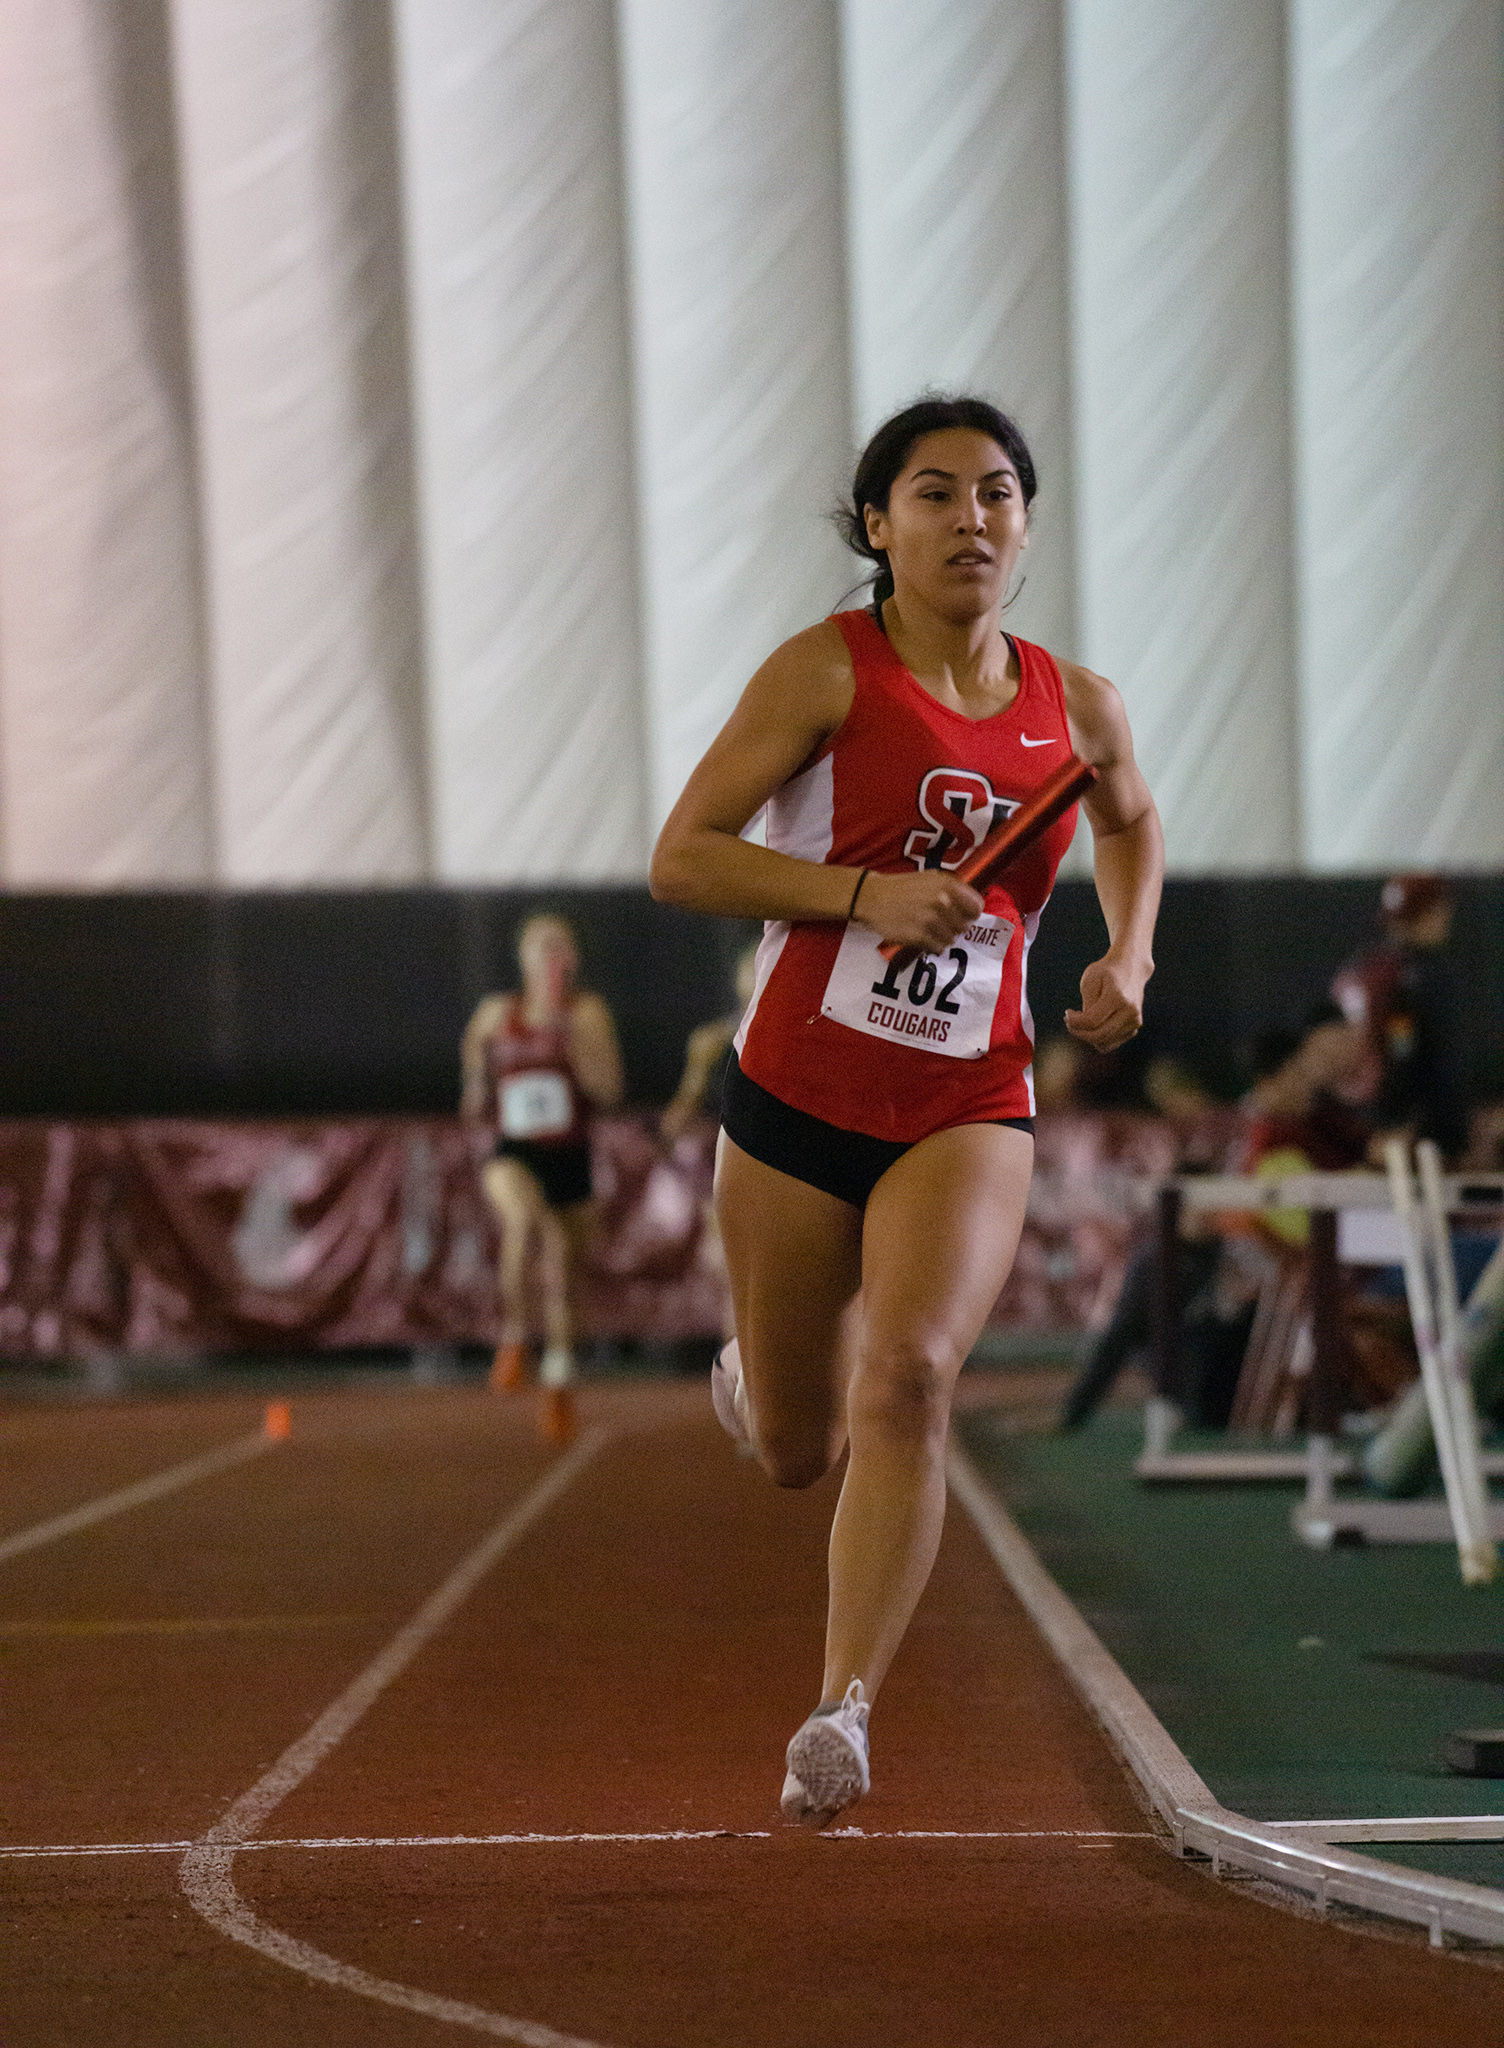 Siobhan Rubio running in the 4x400m in UW's indoor track meet last week.